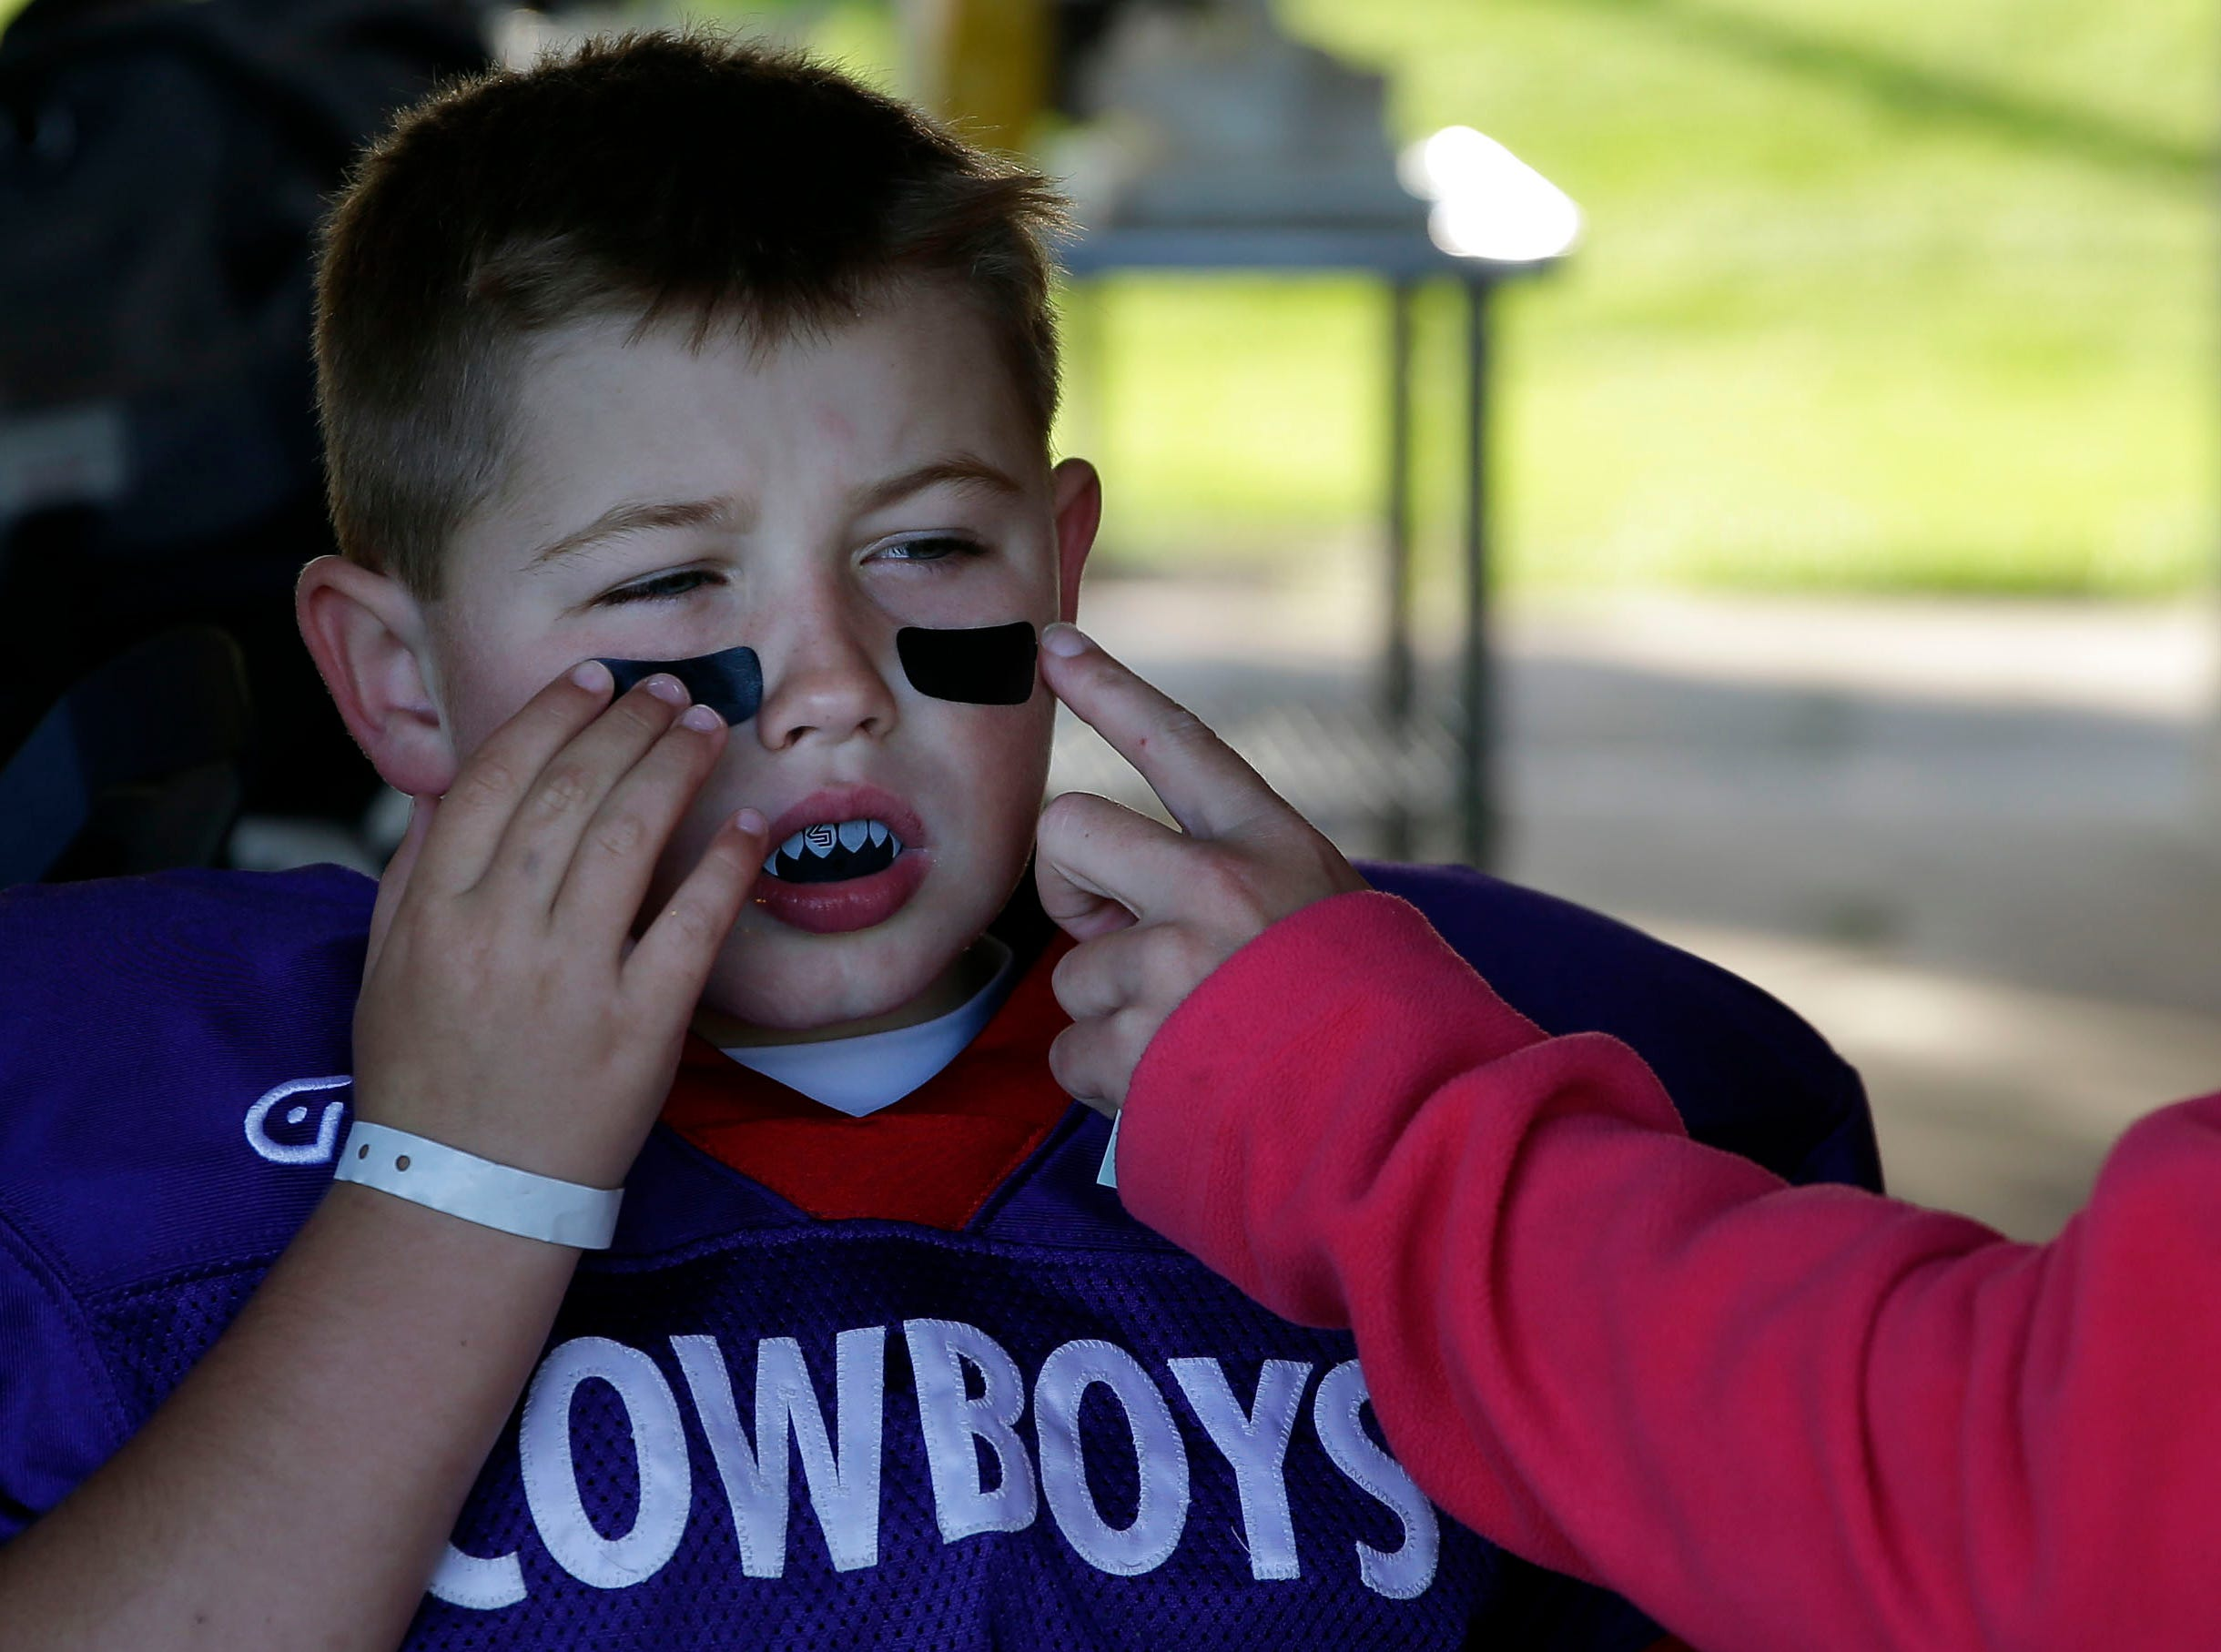 Jaxon Hill of the Cowboys gets help with eye black from his mother, Heather, as Fox Valley Pop Warner Football opens the season Saturday, September 8, 2018, at Plamann Park in Grand Chute, Wis.